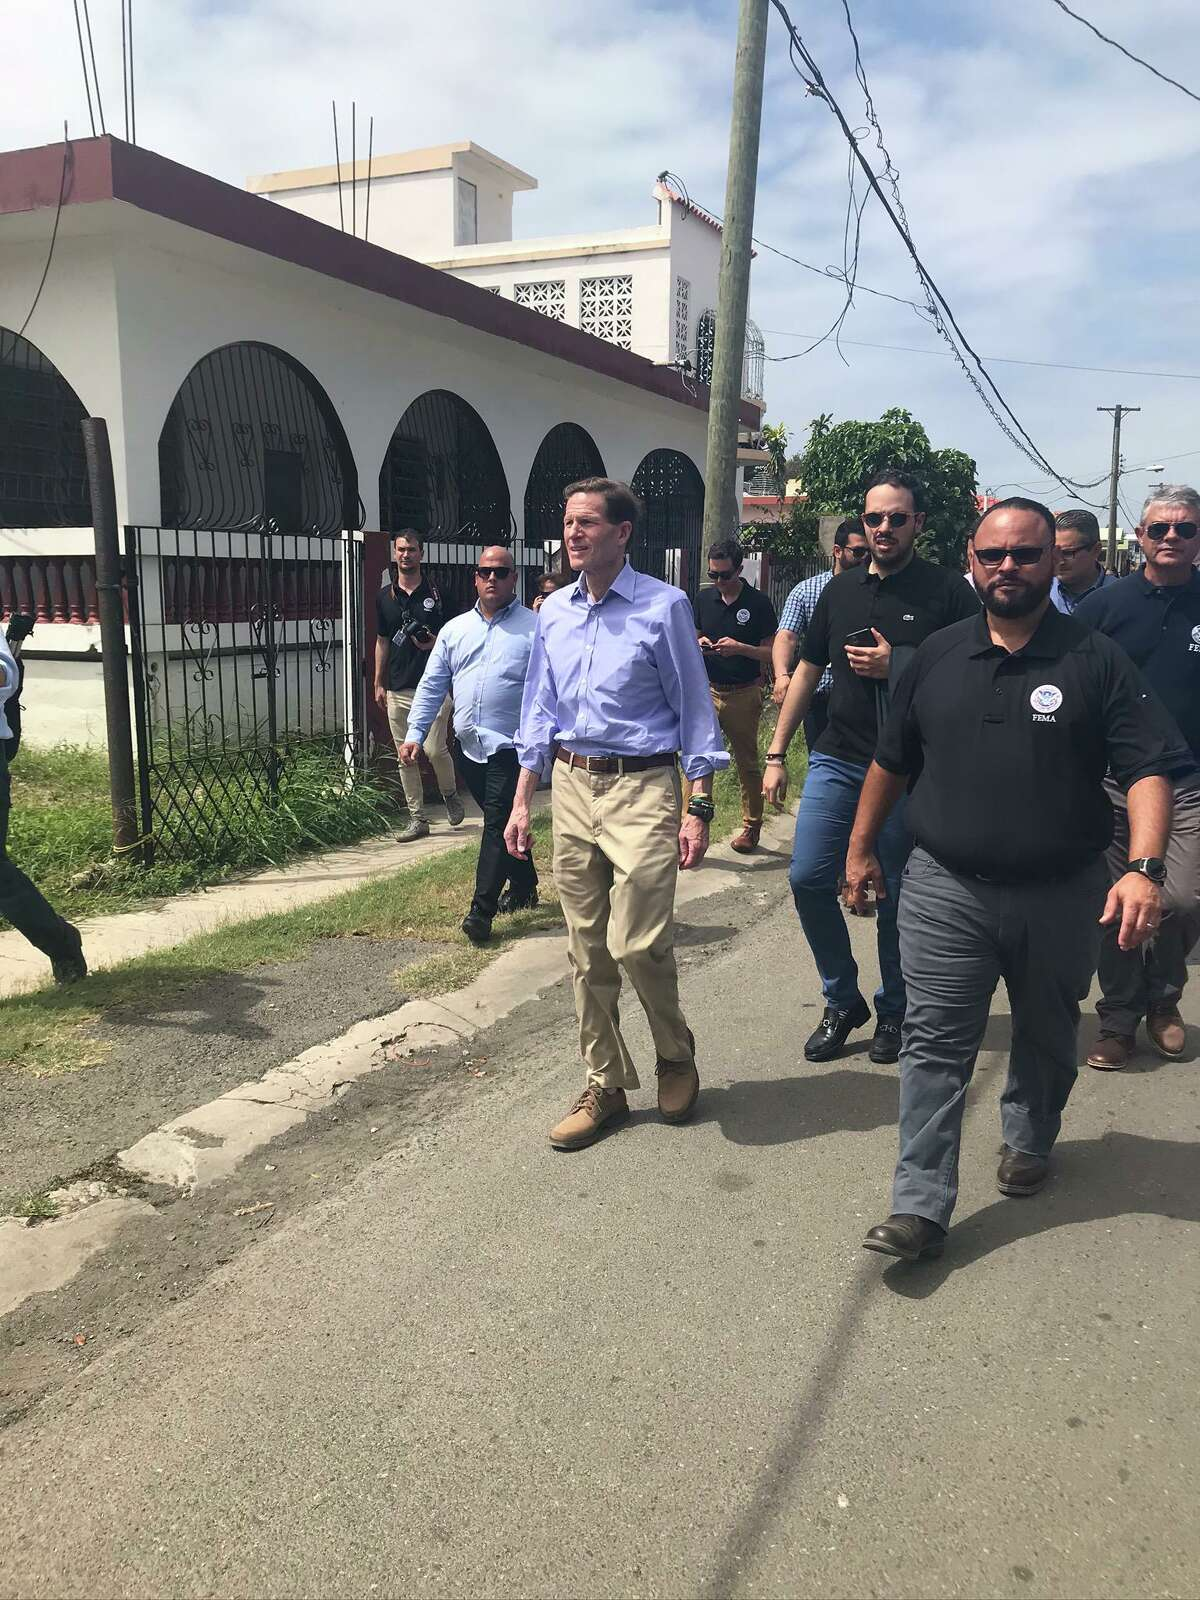 U.S. Sen. Richard Blumenthal was in Puerto Rico Friday, assessing the damage that has left so many people displaced. He spoke with local and federal officials about ongoing recovery efforts on the island and focused on the generational impact of Hurricane Maria and recent earthquakes on Puerto Rico's children and young people.